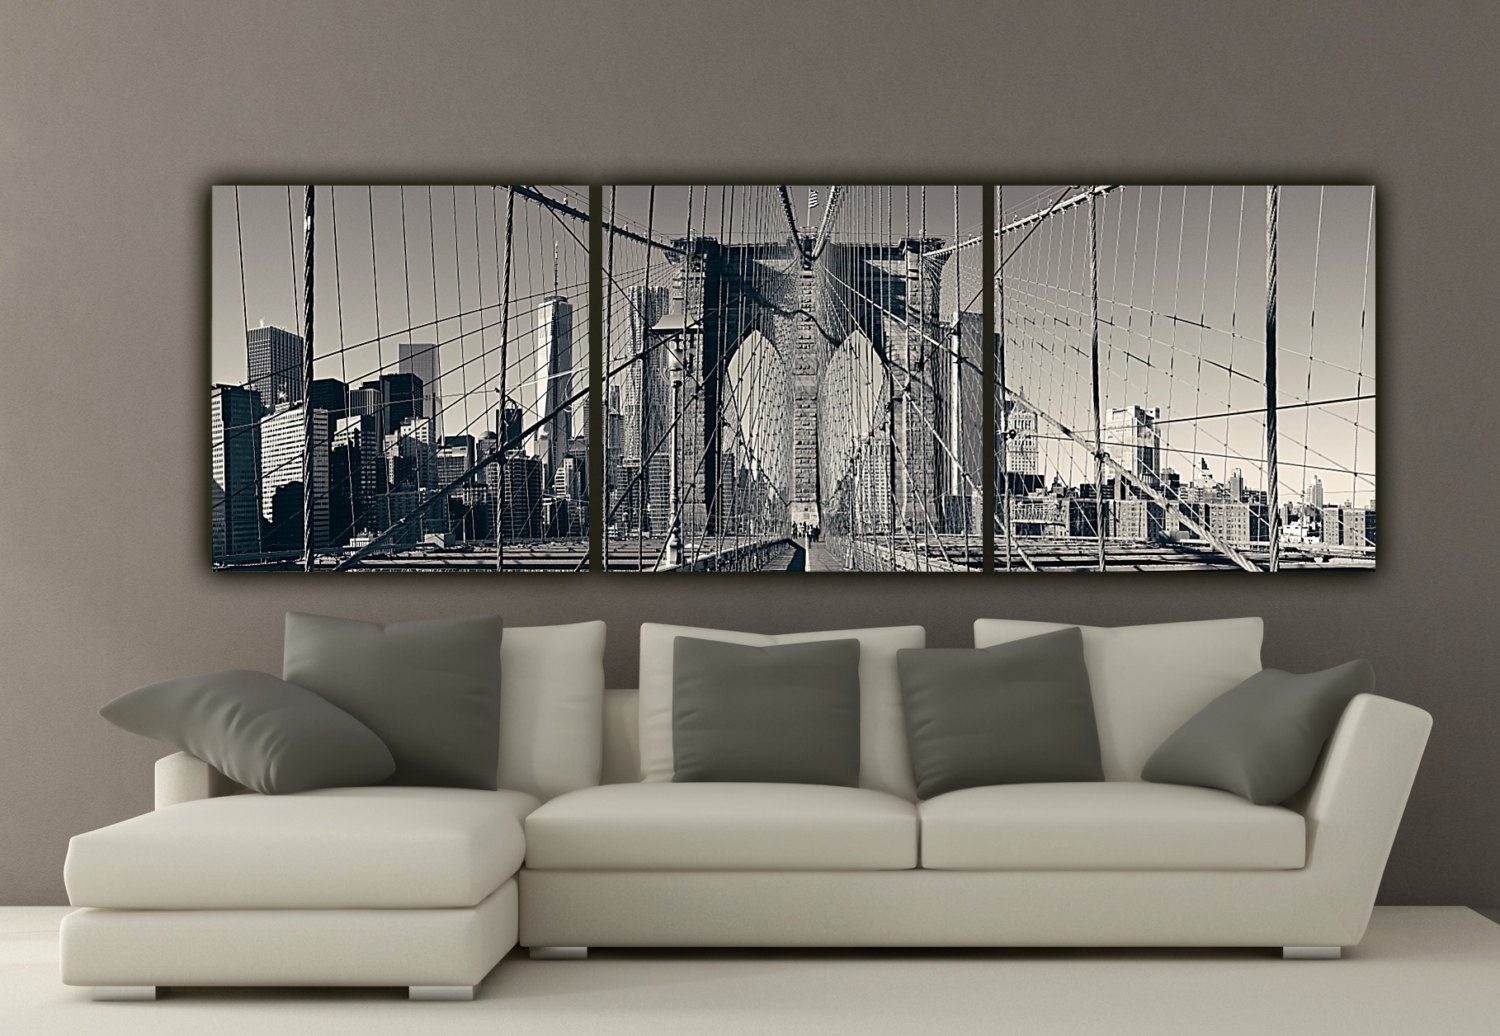 New Canvas Wall Art New York City | Wall Decorations Pertaining To Most Up To Date New York Wall Art (View 2 of 20)